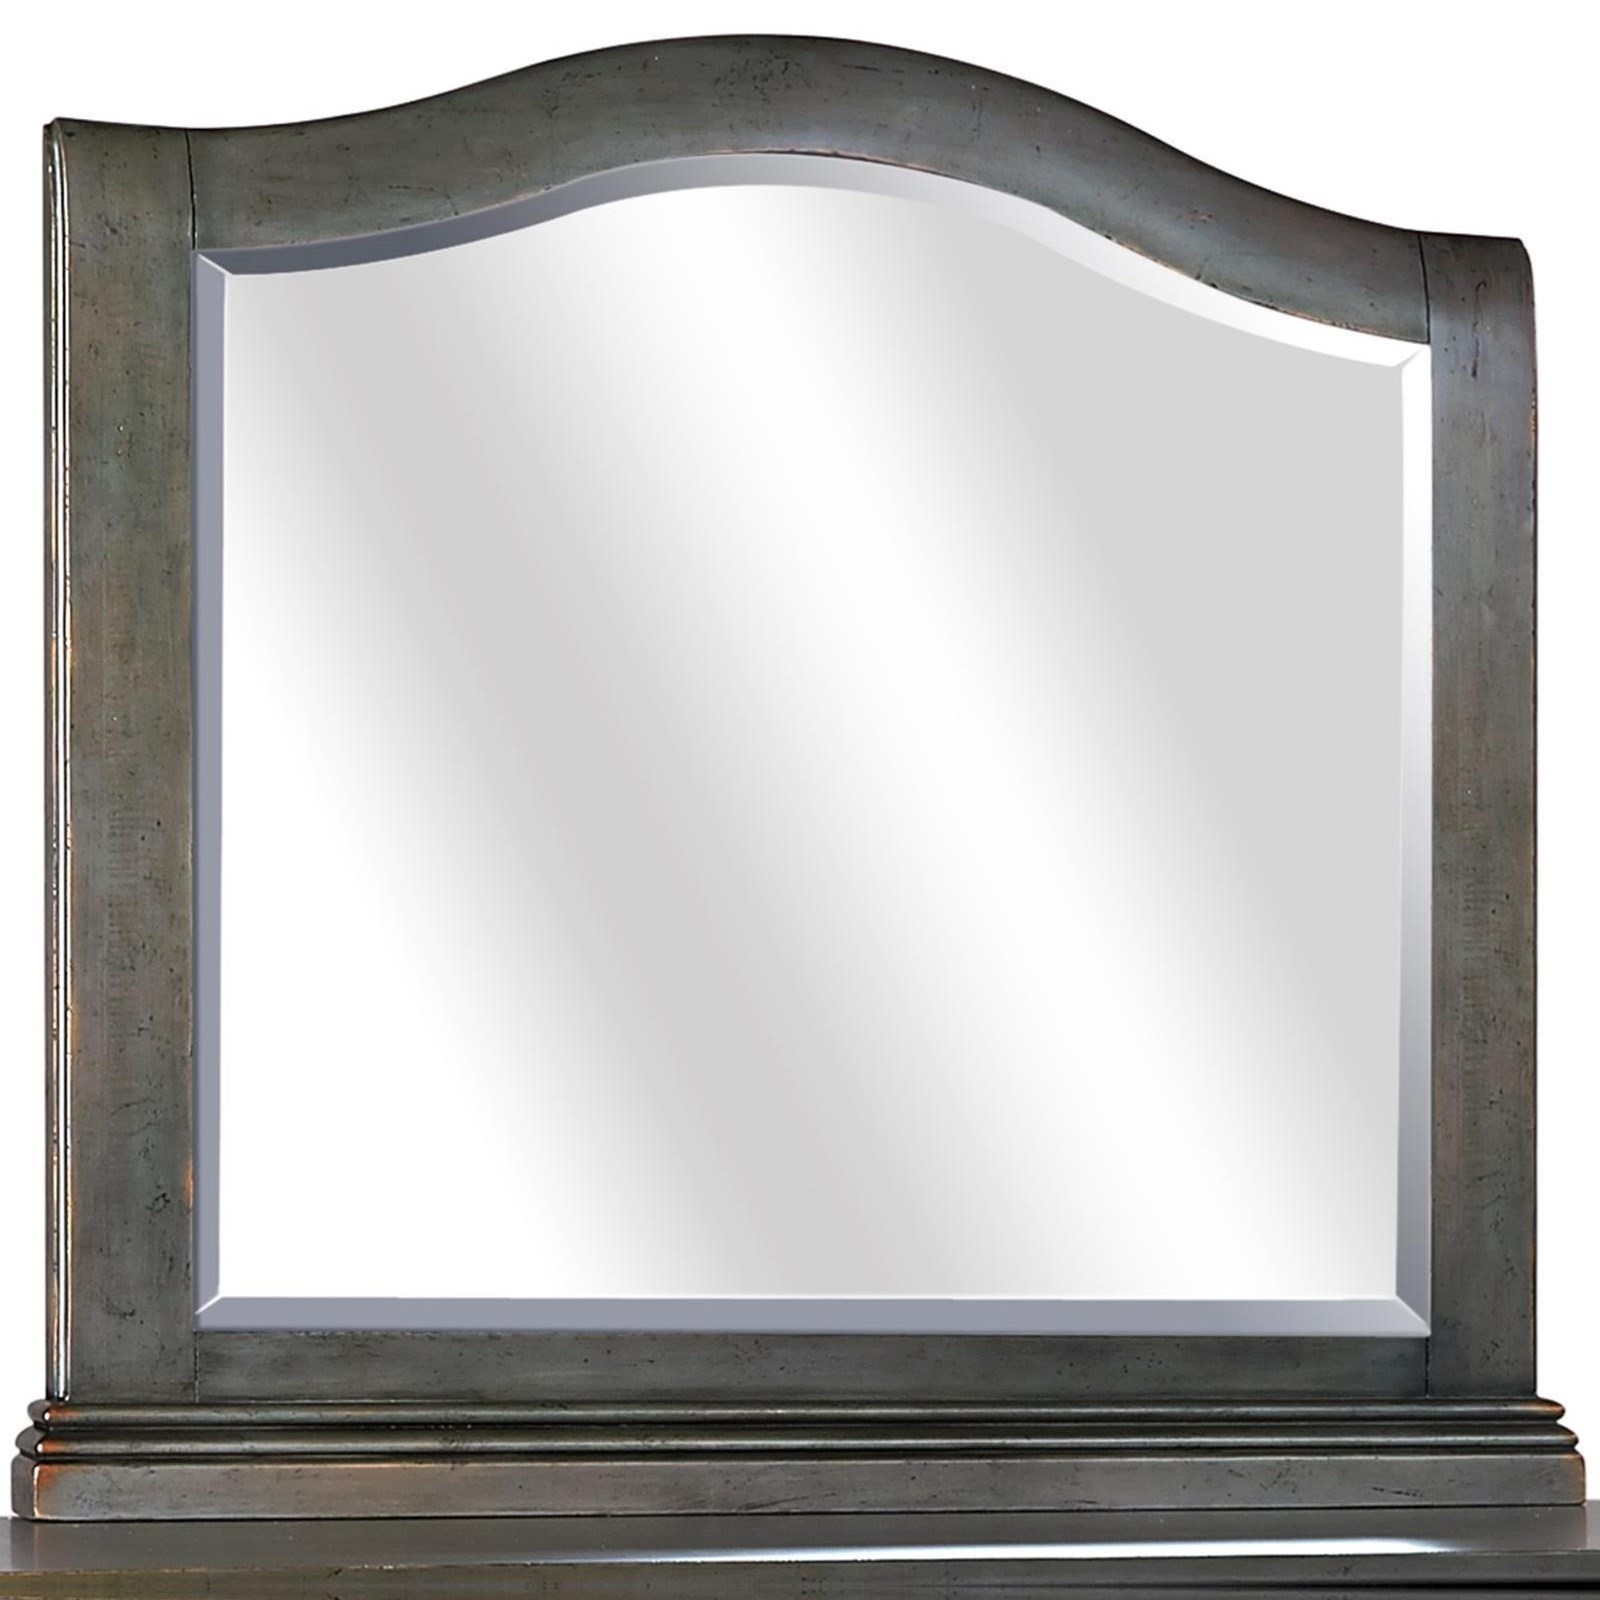 Aspenhome Oxford Arched Mirror - Item Number: I07-463-PEP